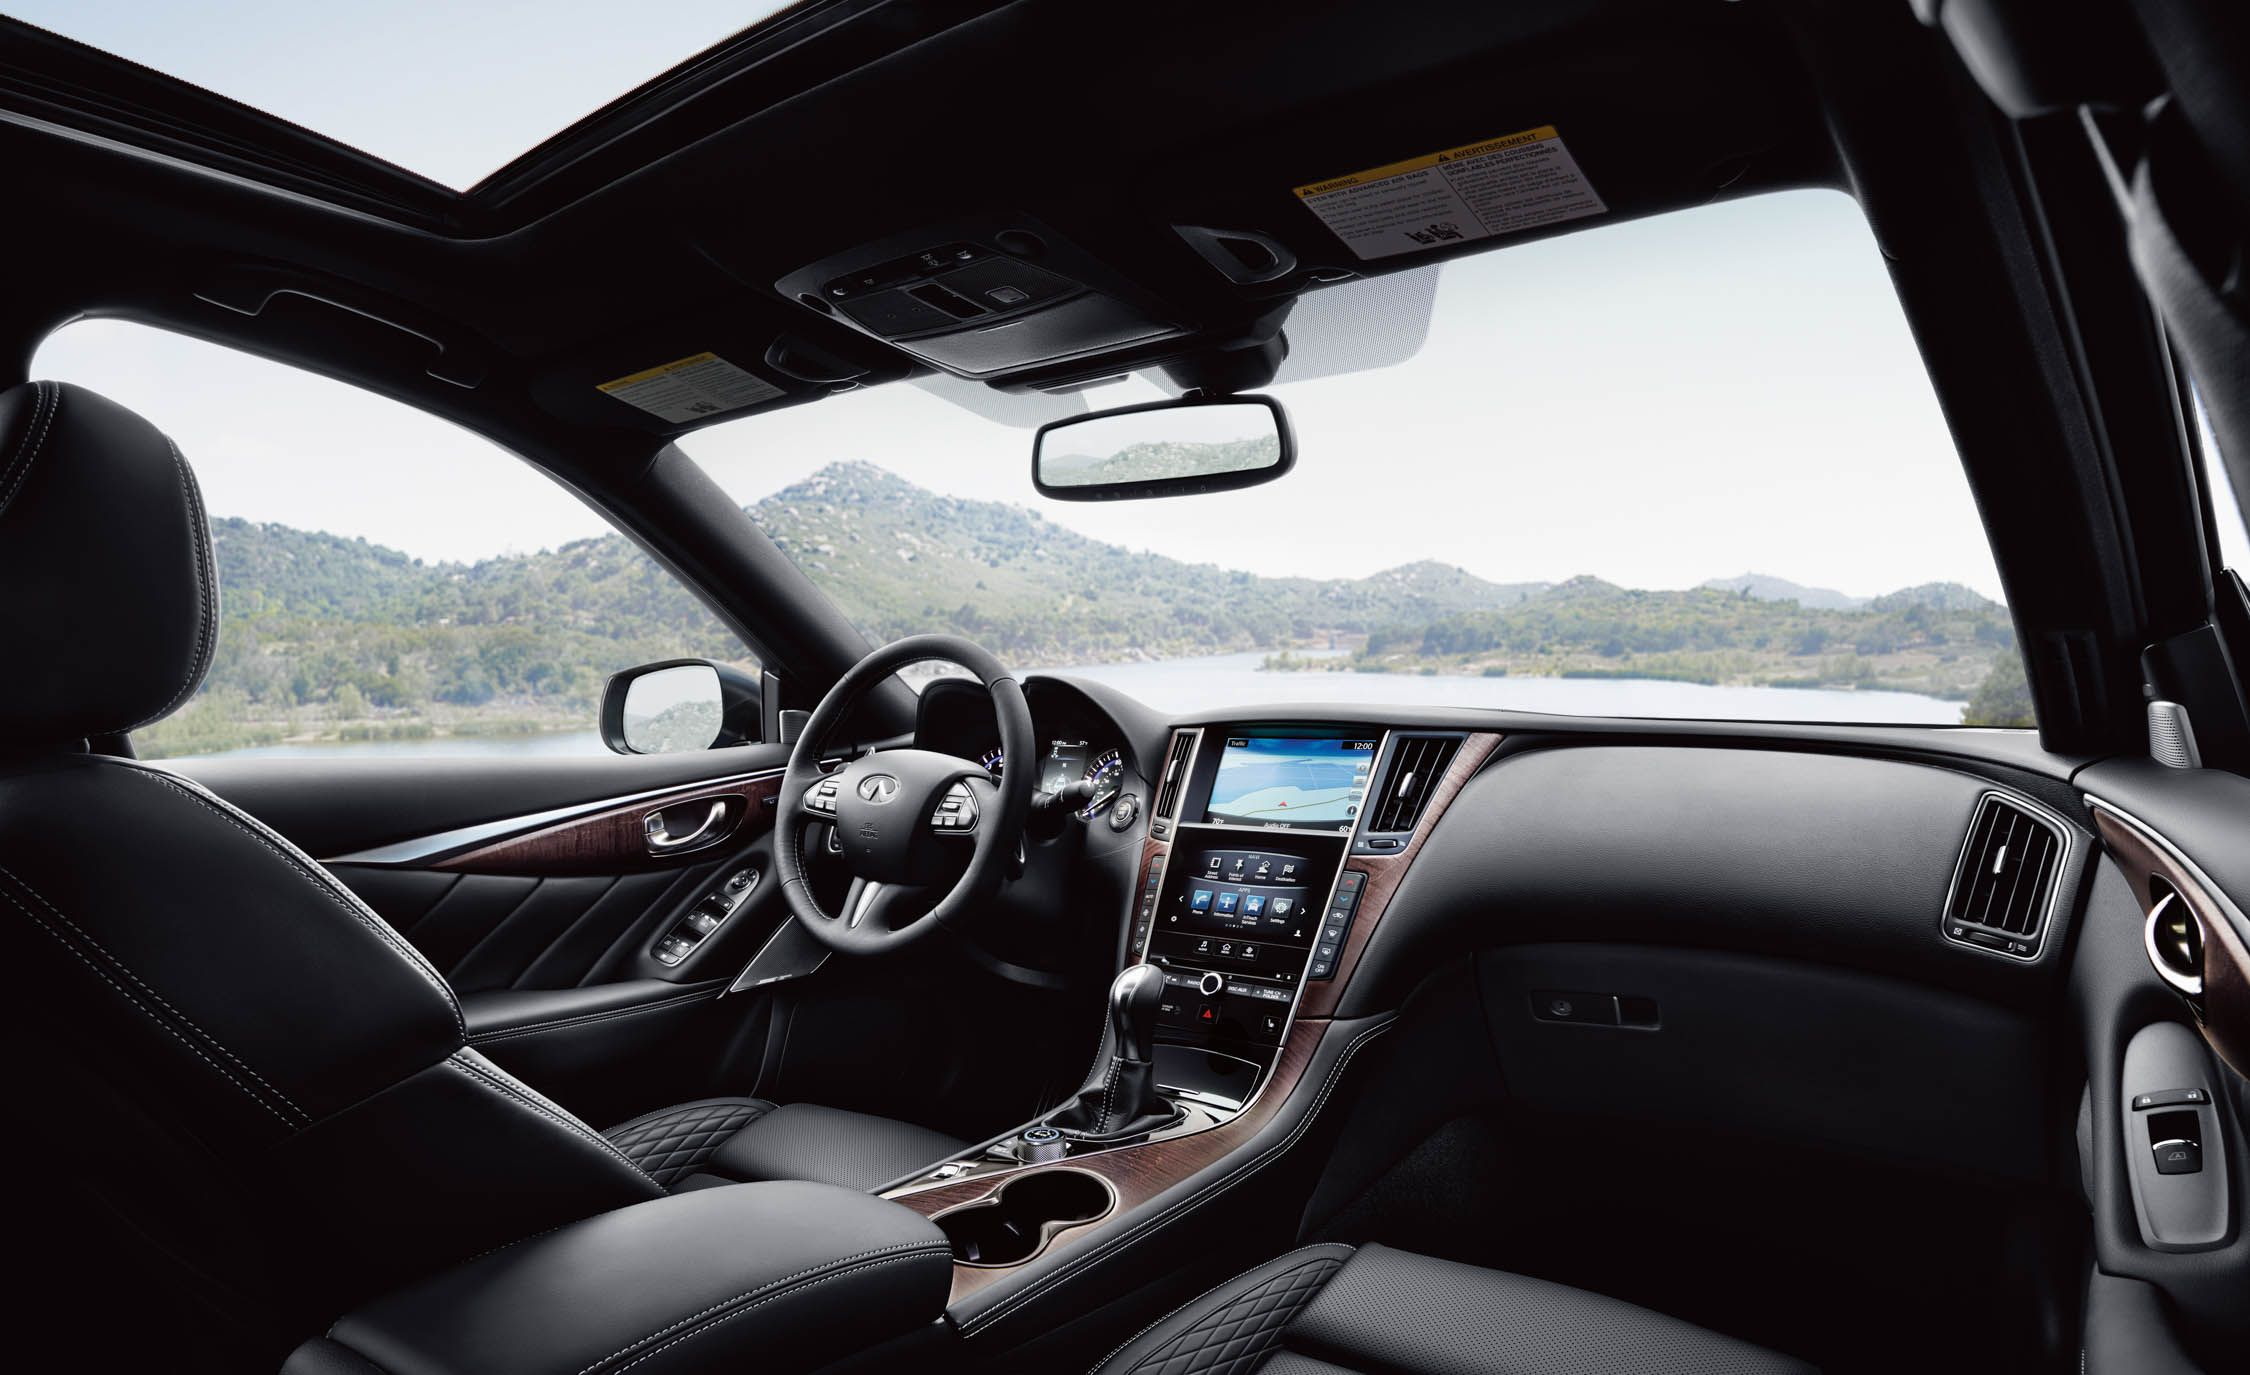 2017 Infiniti Q50 Gains Clier Interior Options New Bose Audio System News Car And Driver